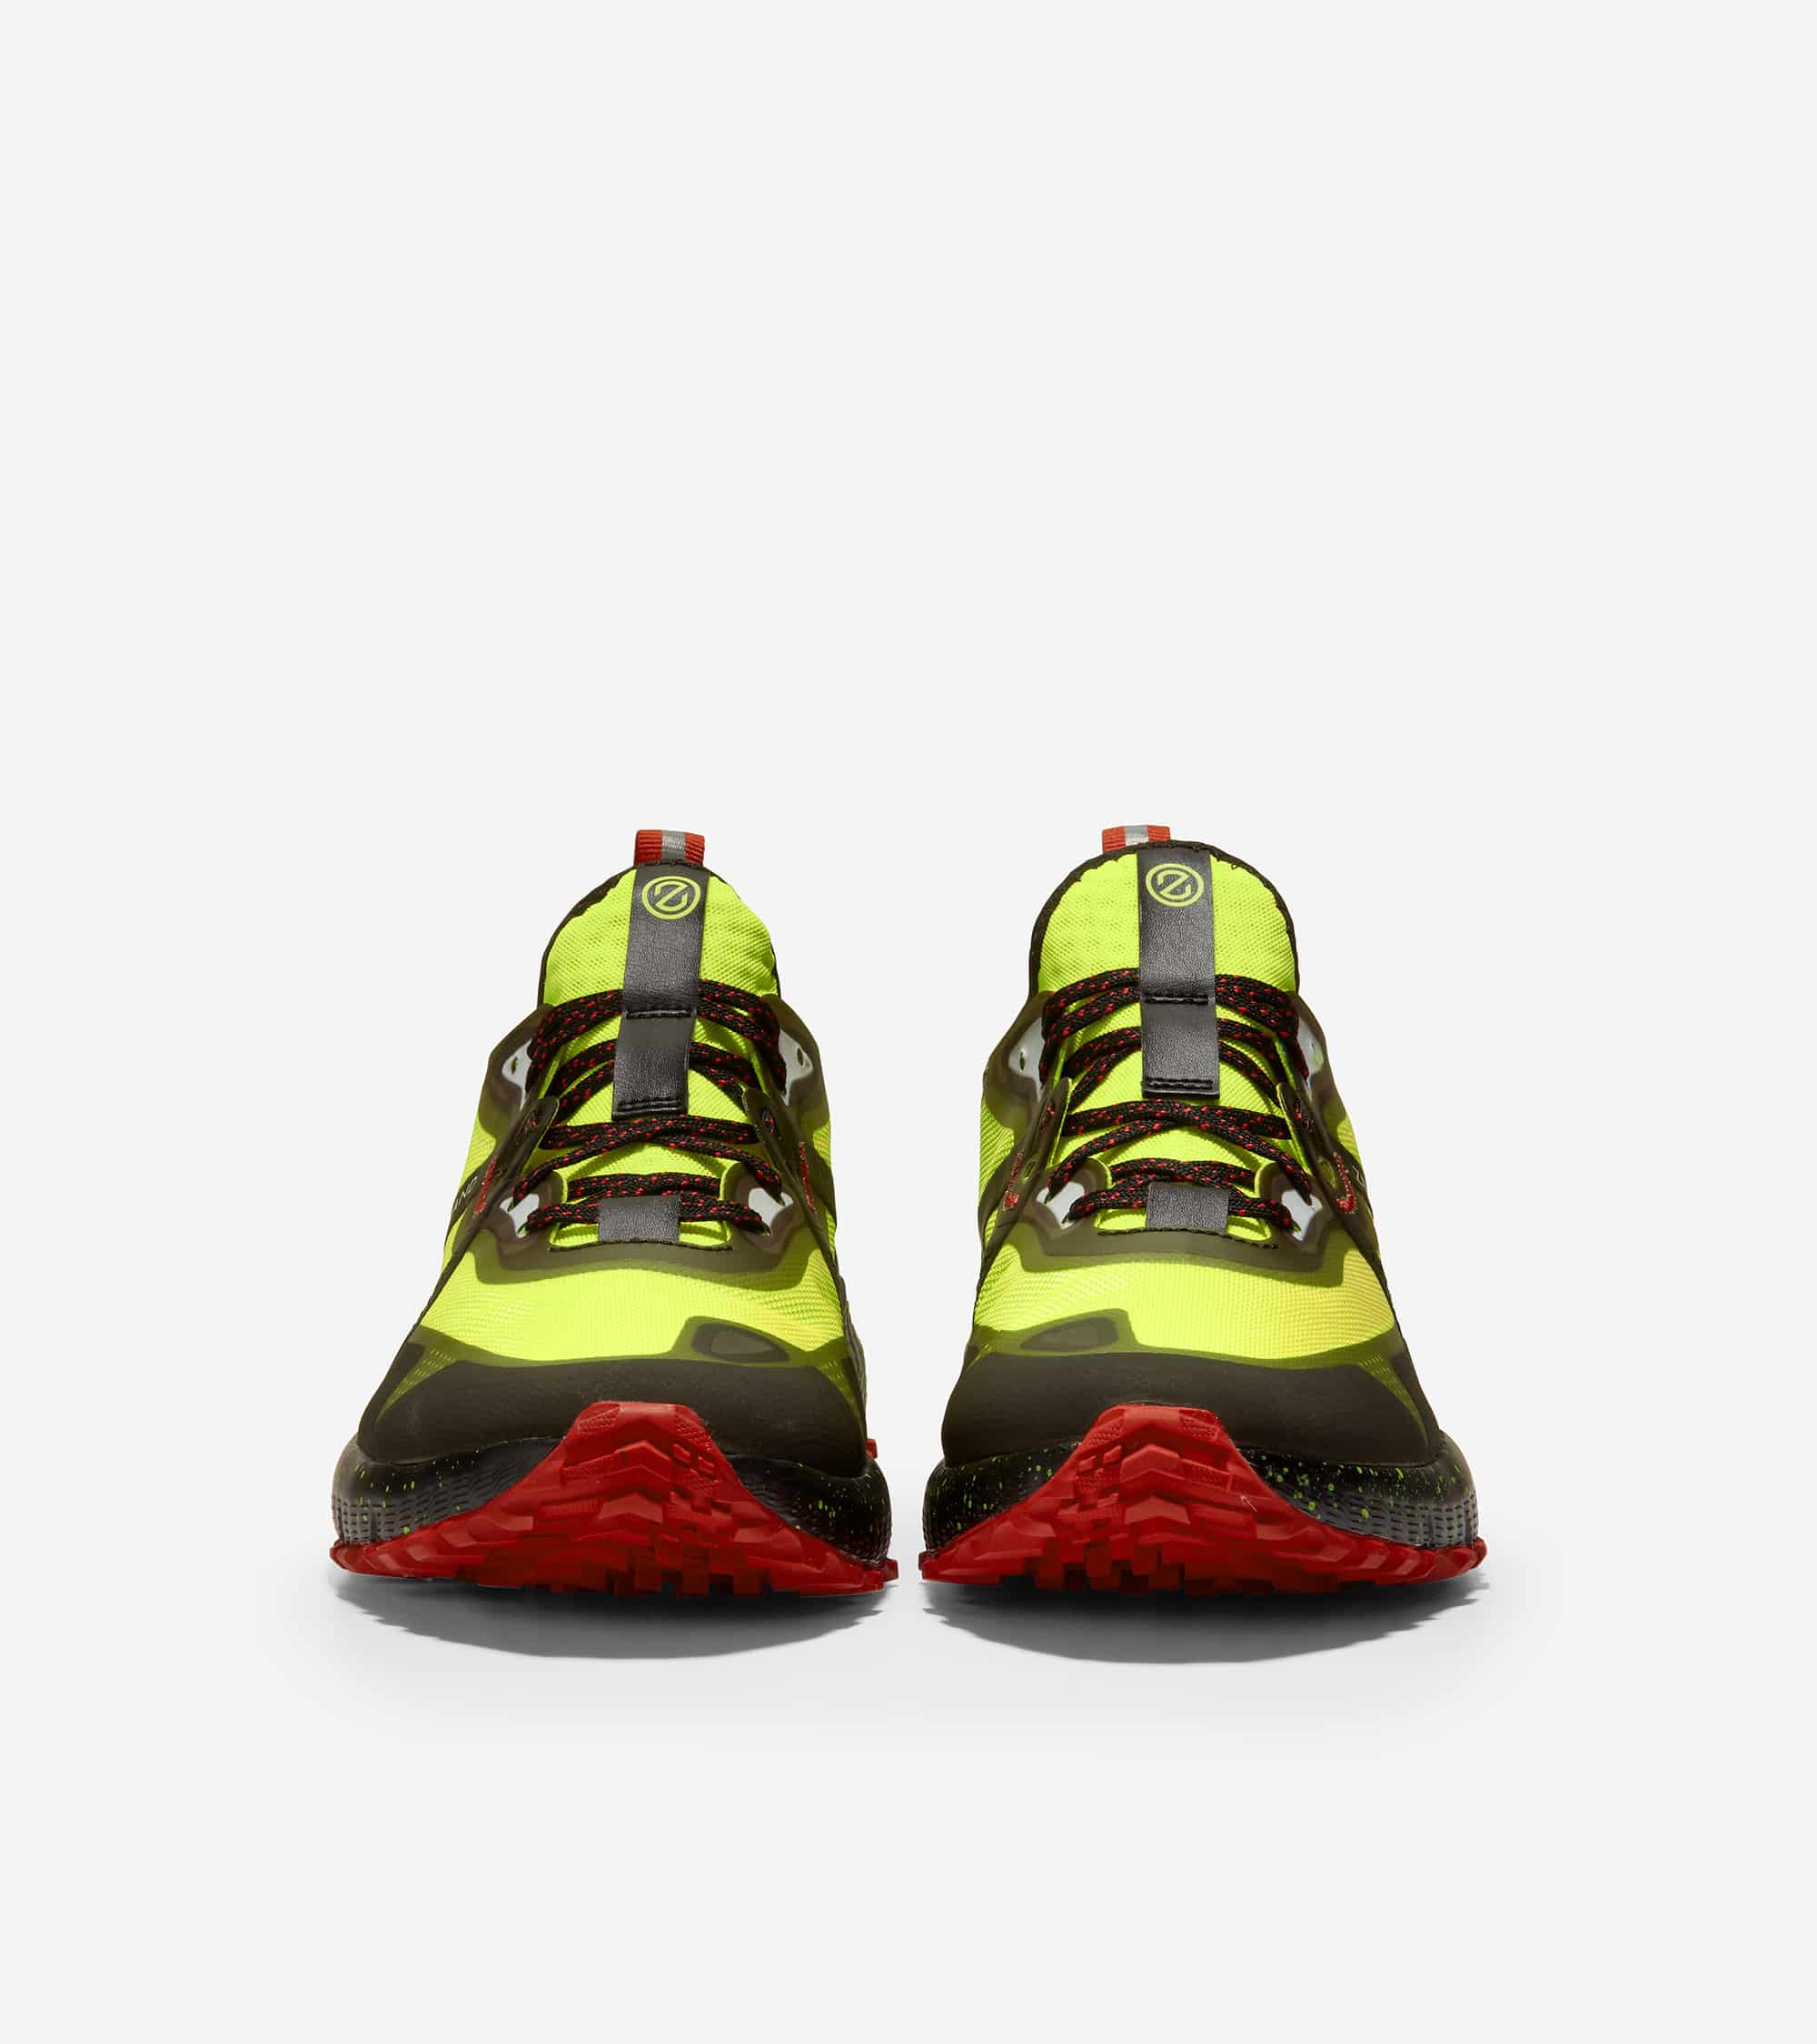 Cole Haan ZERØGRAND Overtake All Terrain Wr Safety Yellow/Black Wr/Black With Speckle-Molten Lava